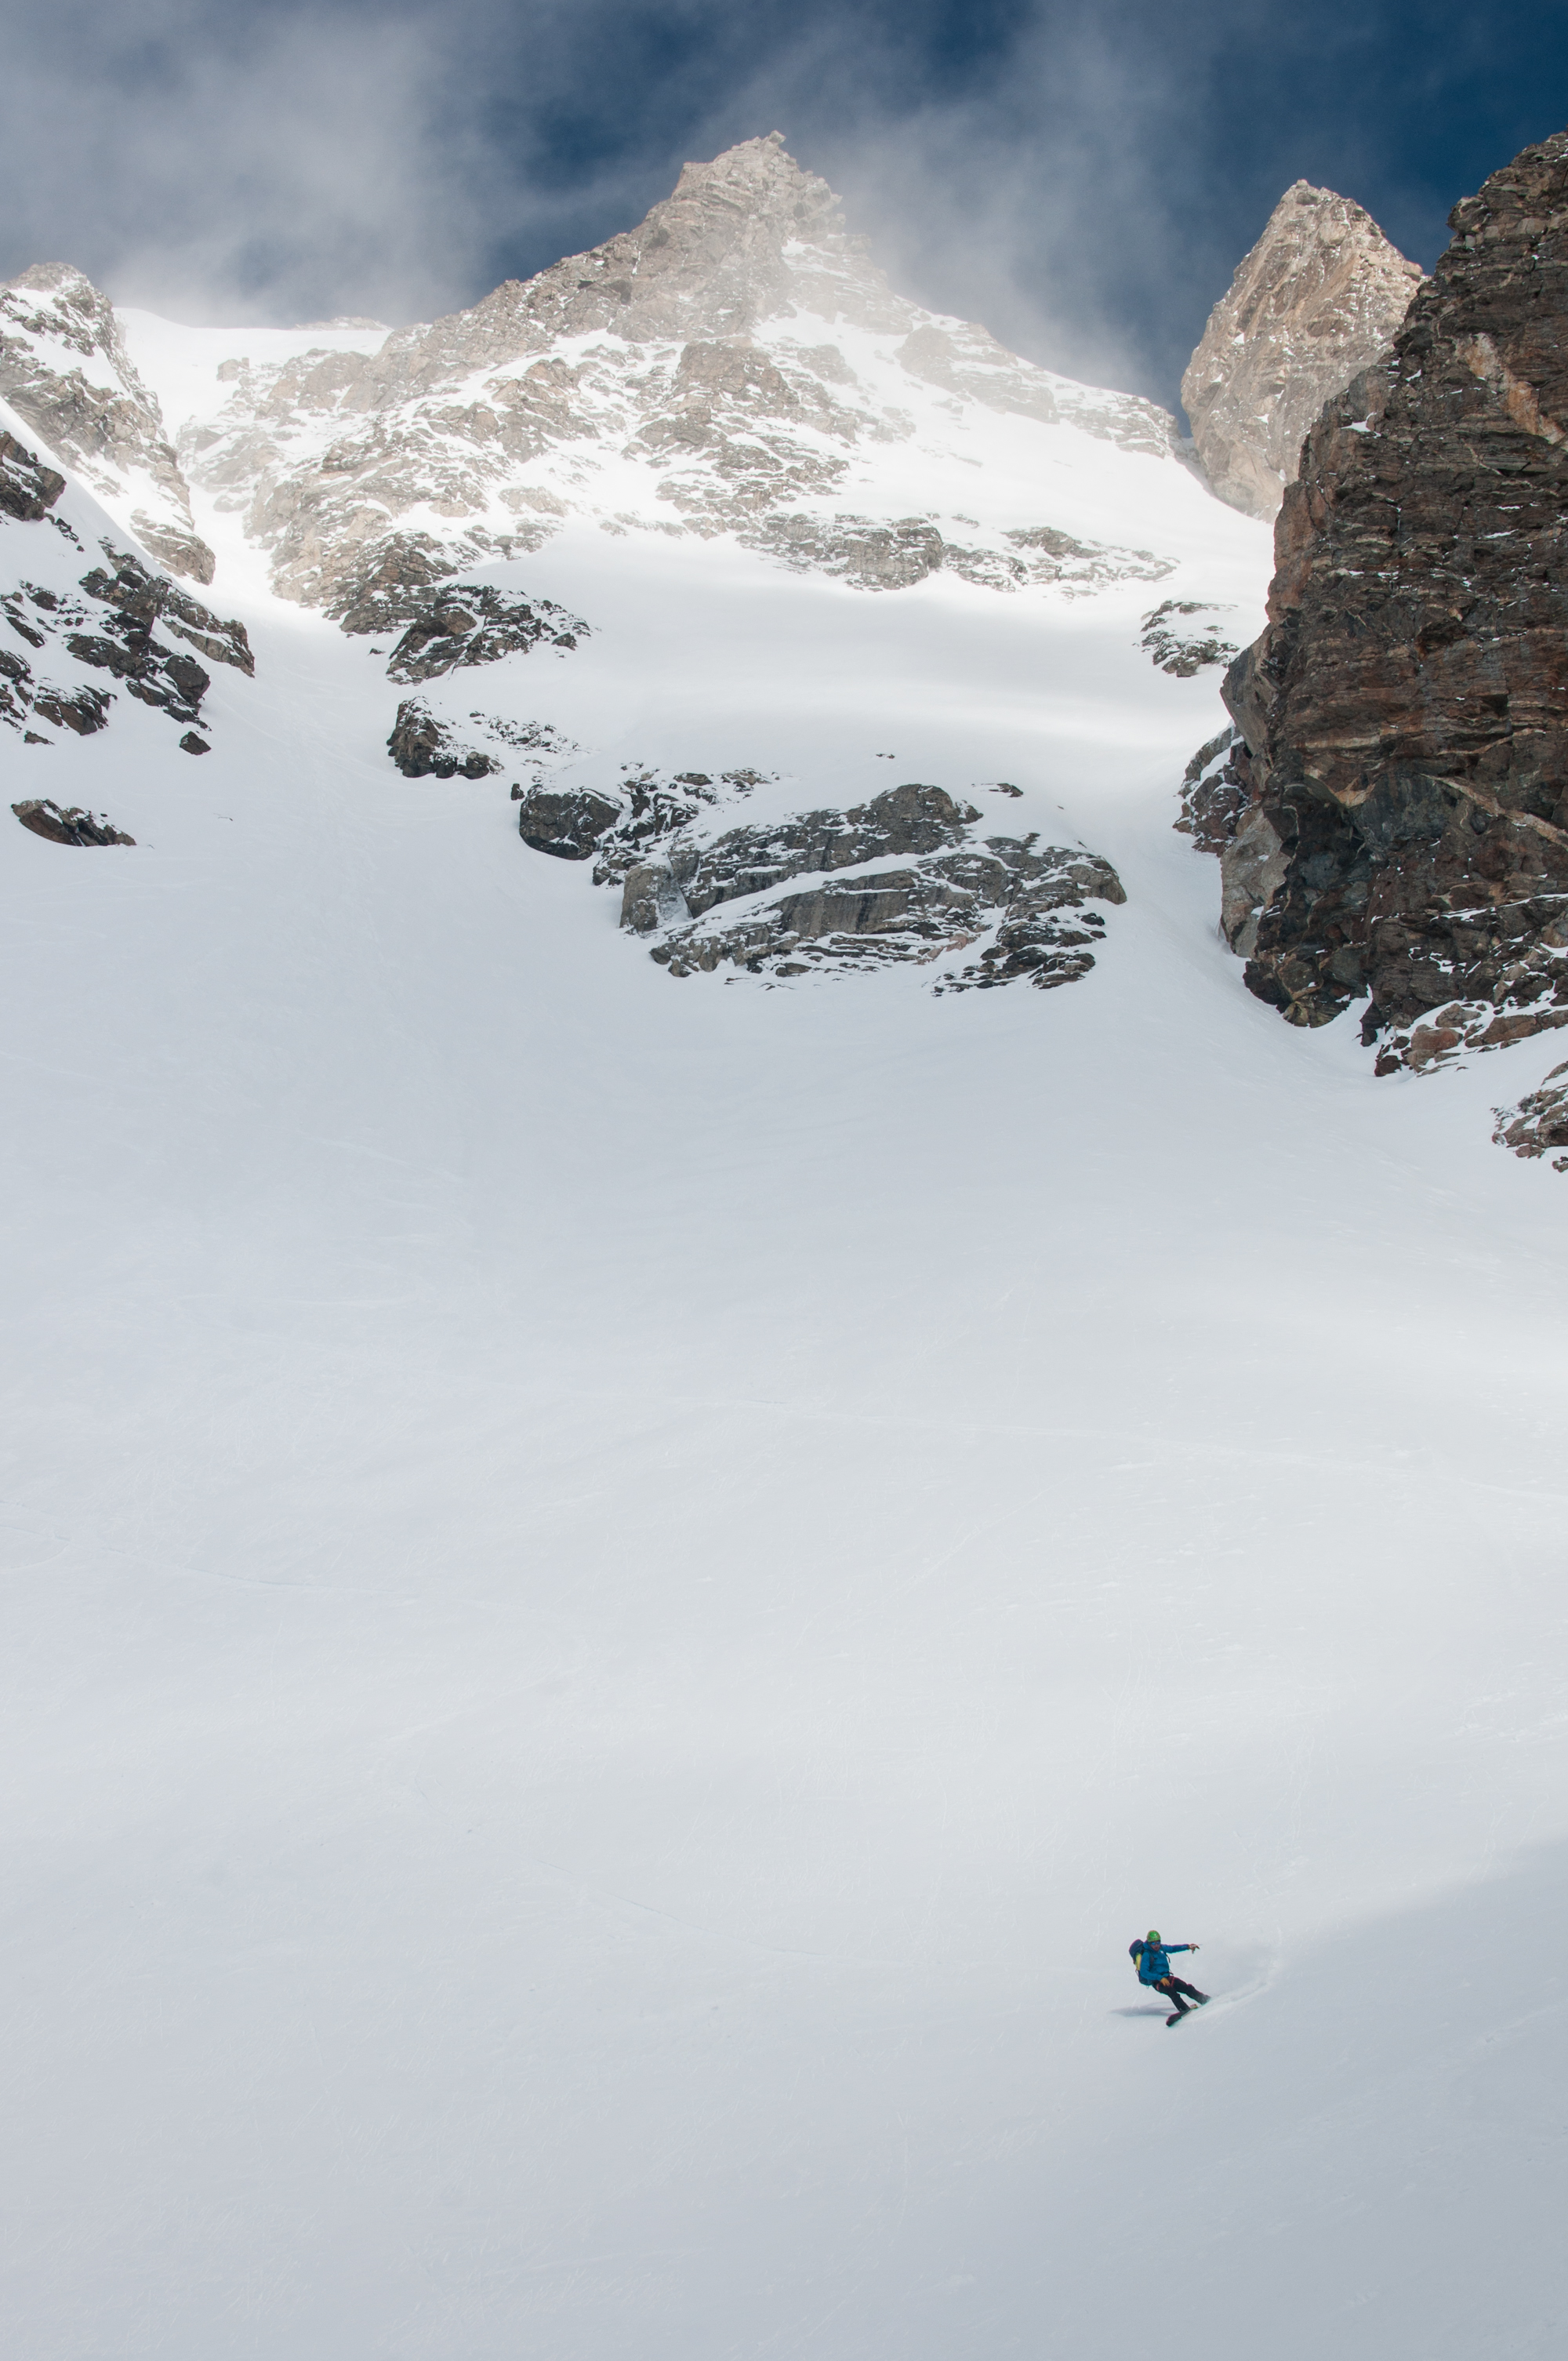 Ben Glatz near the bottom of the SouthEast Couloir on the South Teton